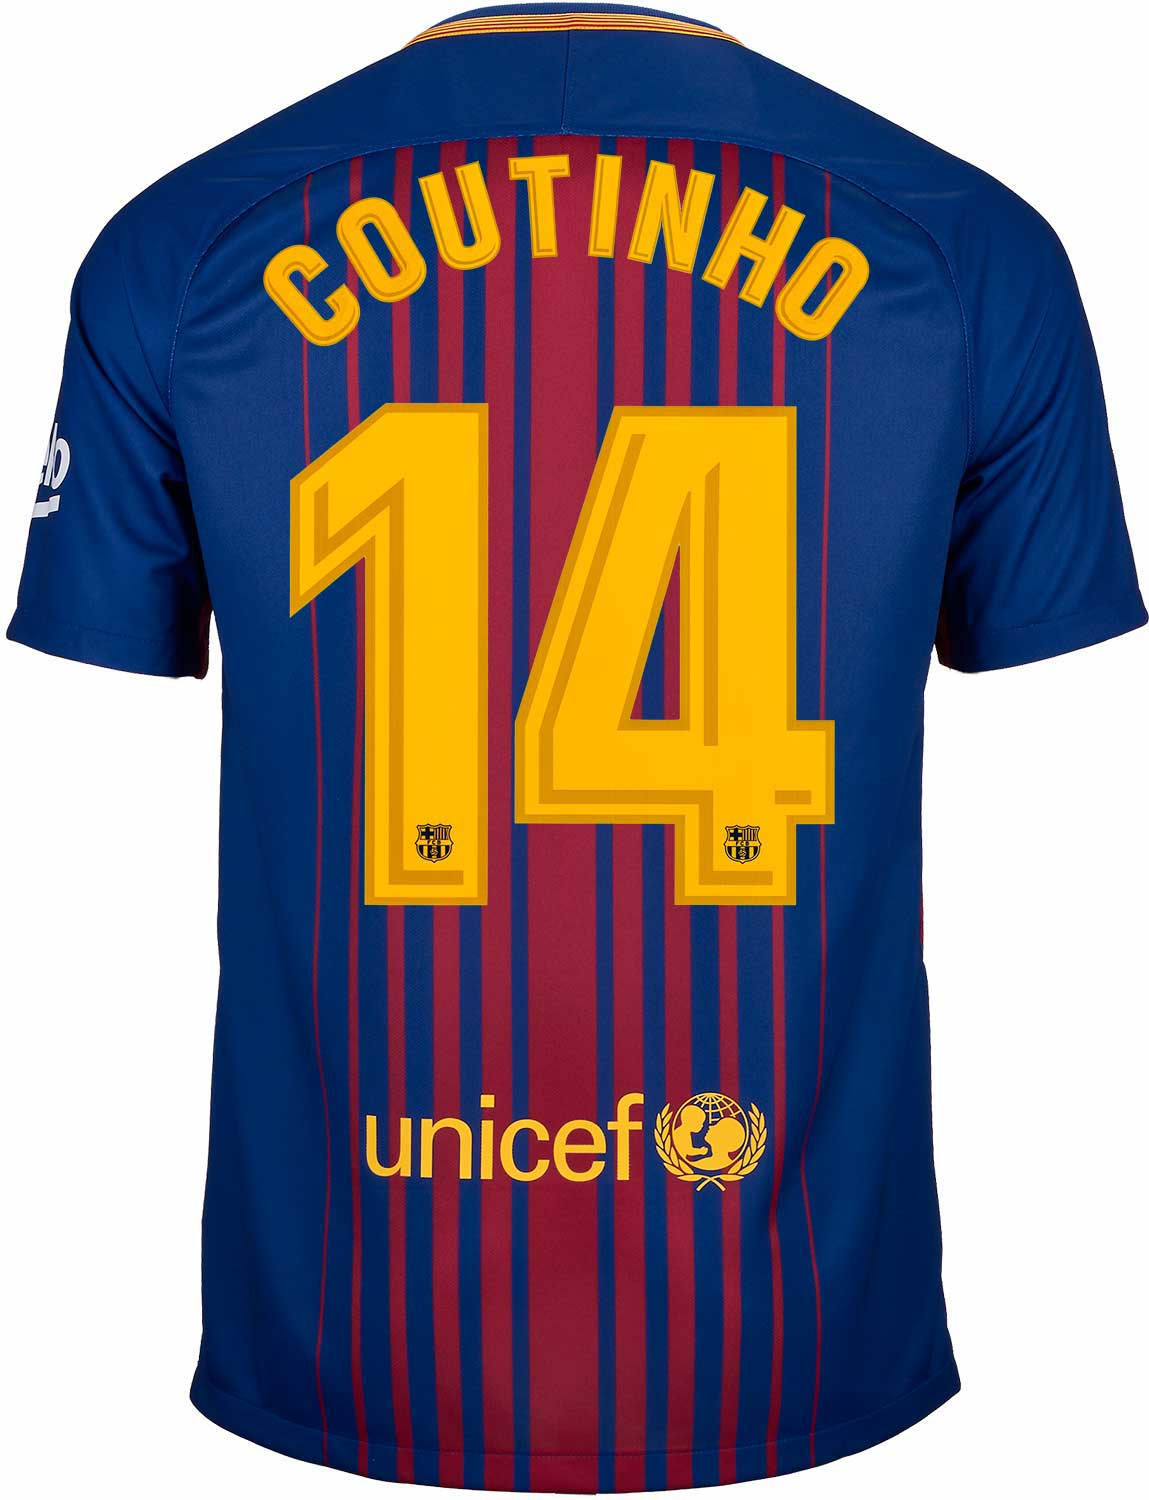 82aed2d8d5b 2017 18 Kids Nike FC Barcelona Philippe Coutinho Home Jersey   SoccerPro